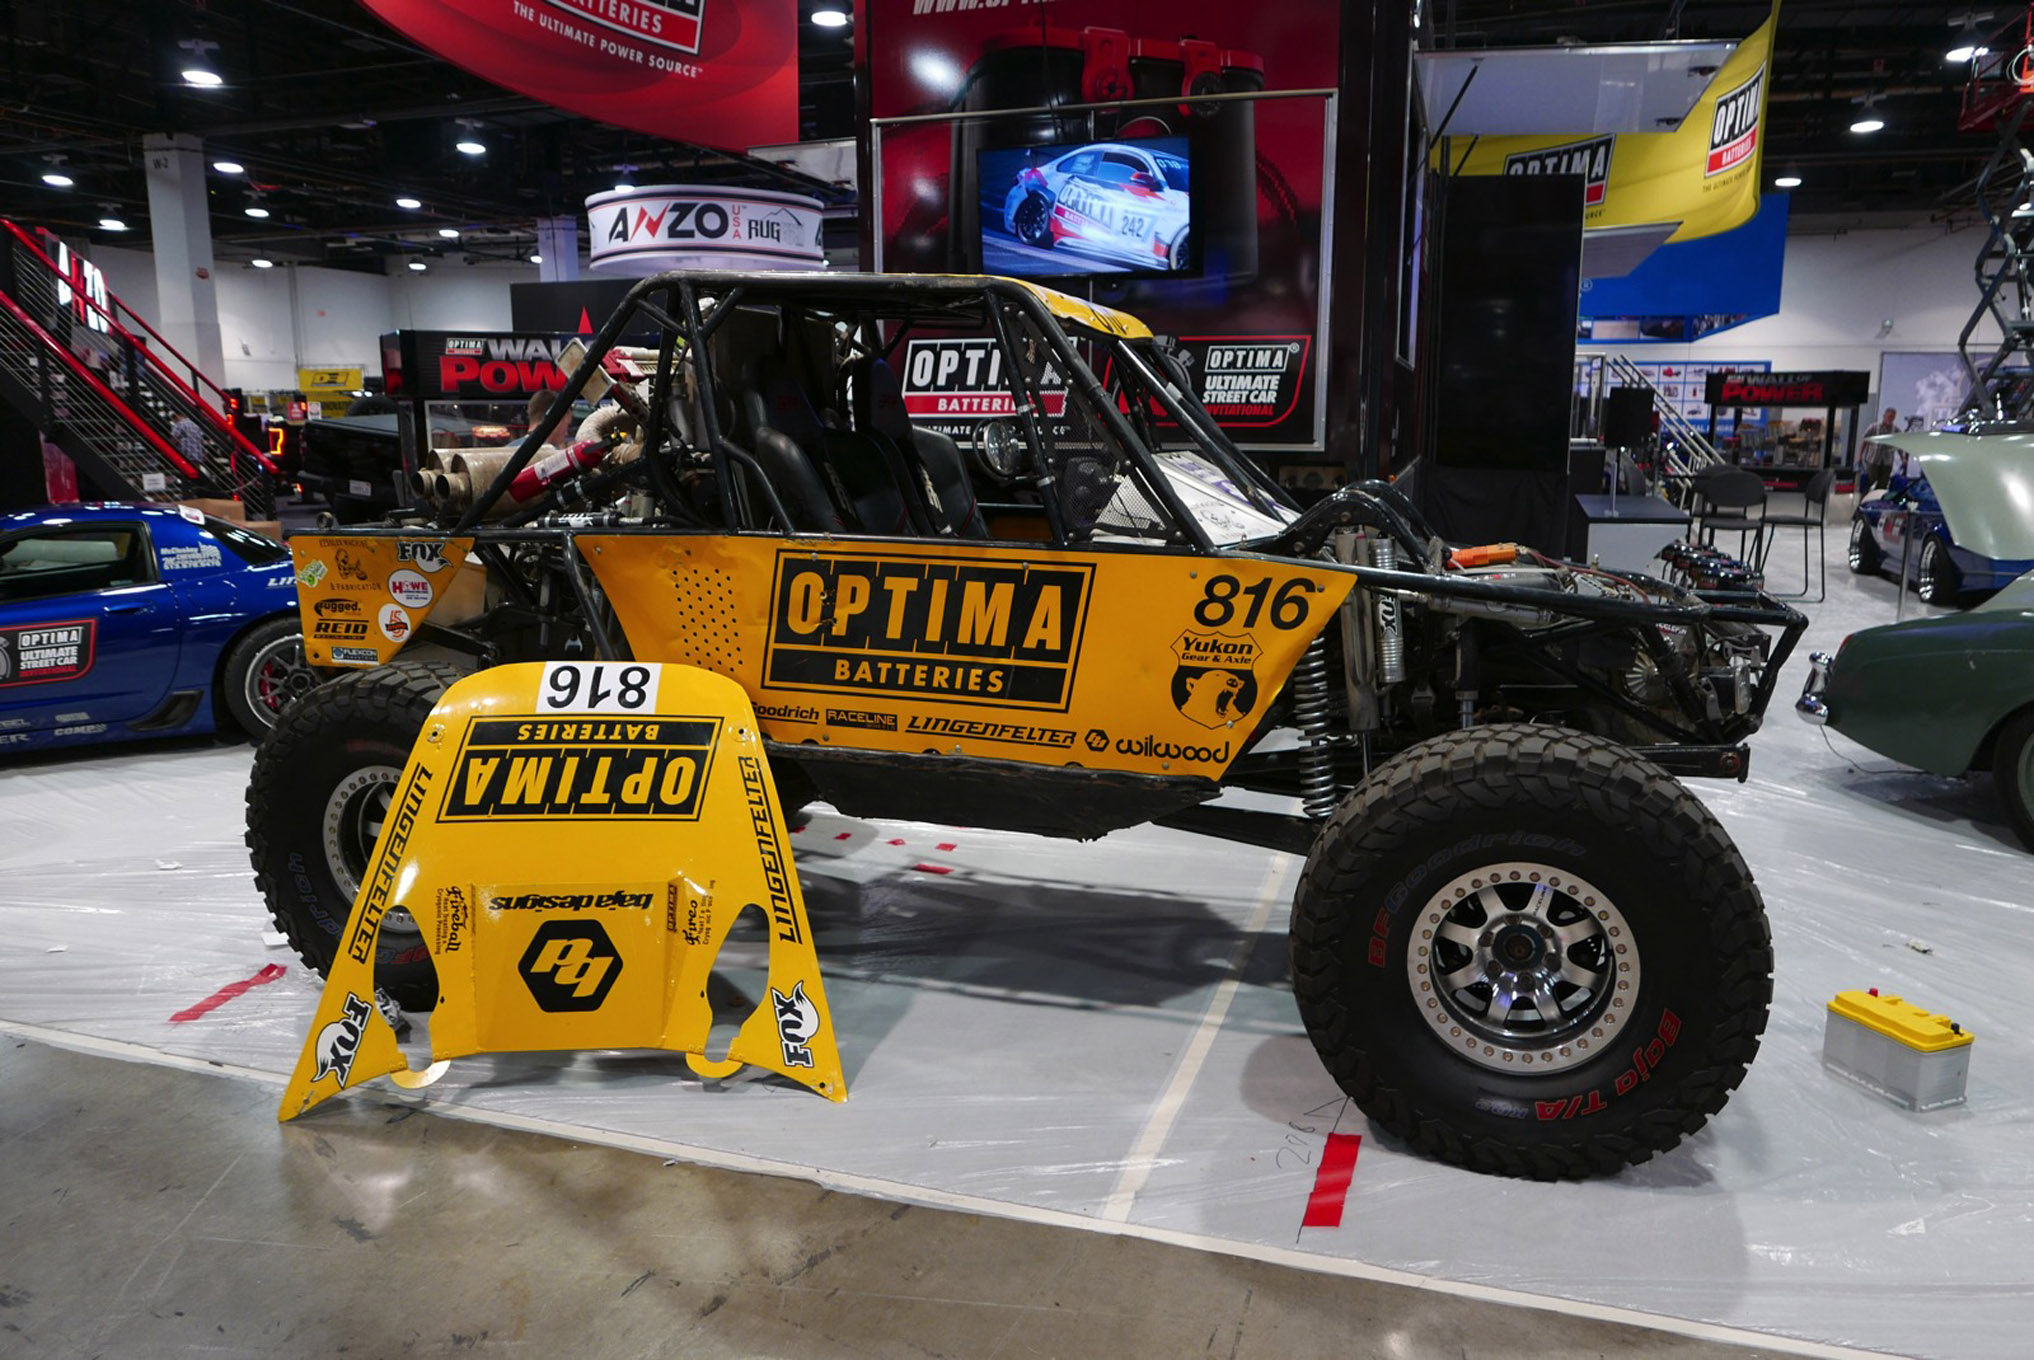 081 sema 2017 day 1 south upper hall gallery photos